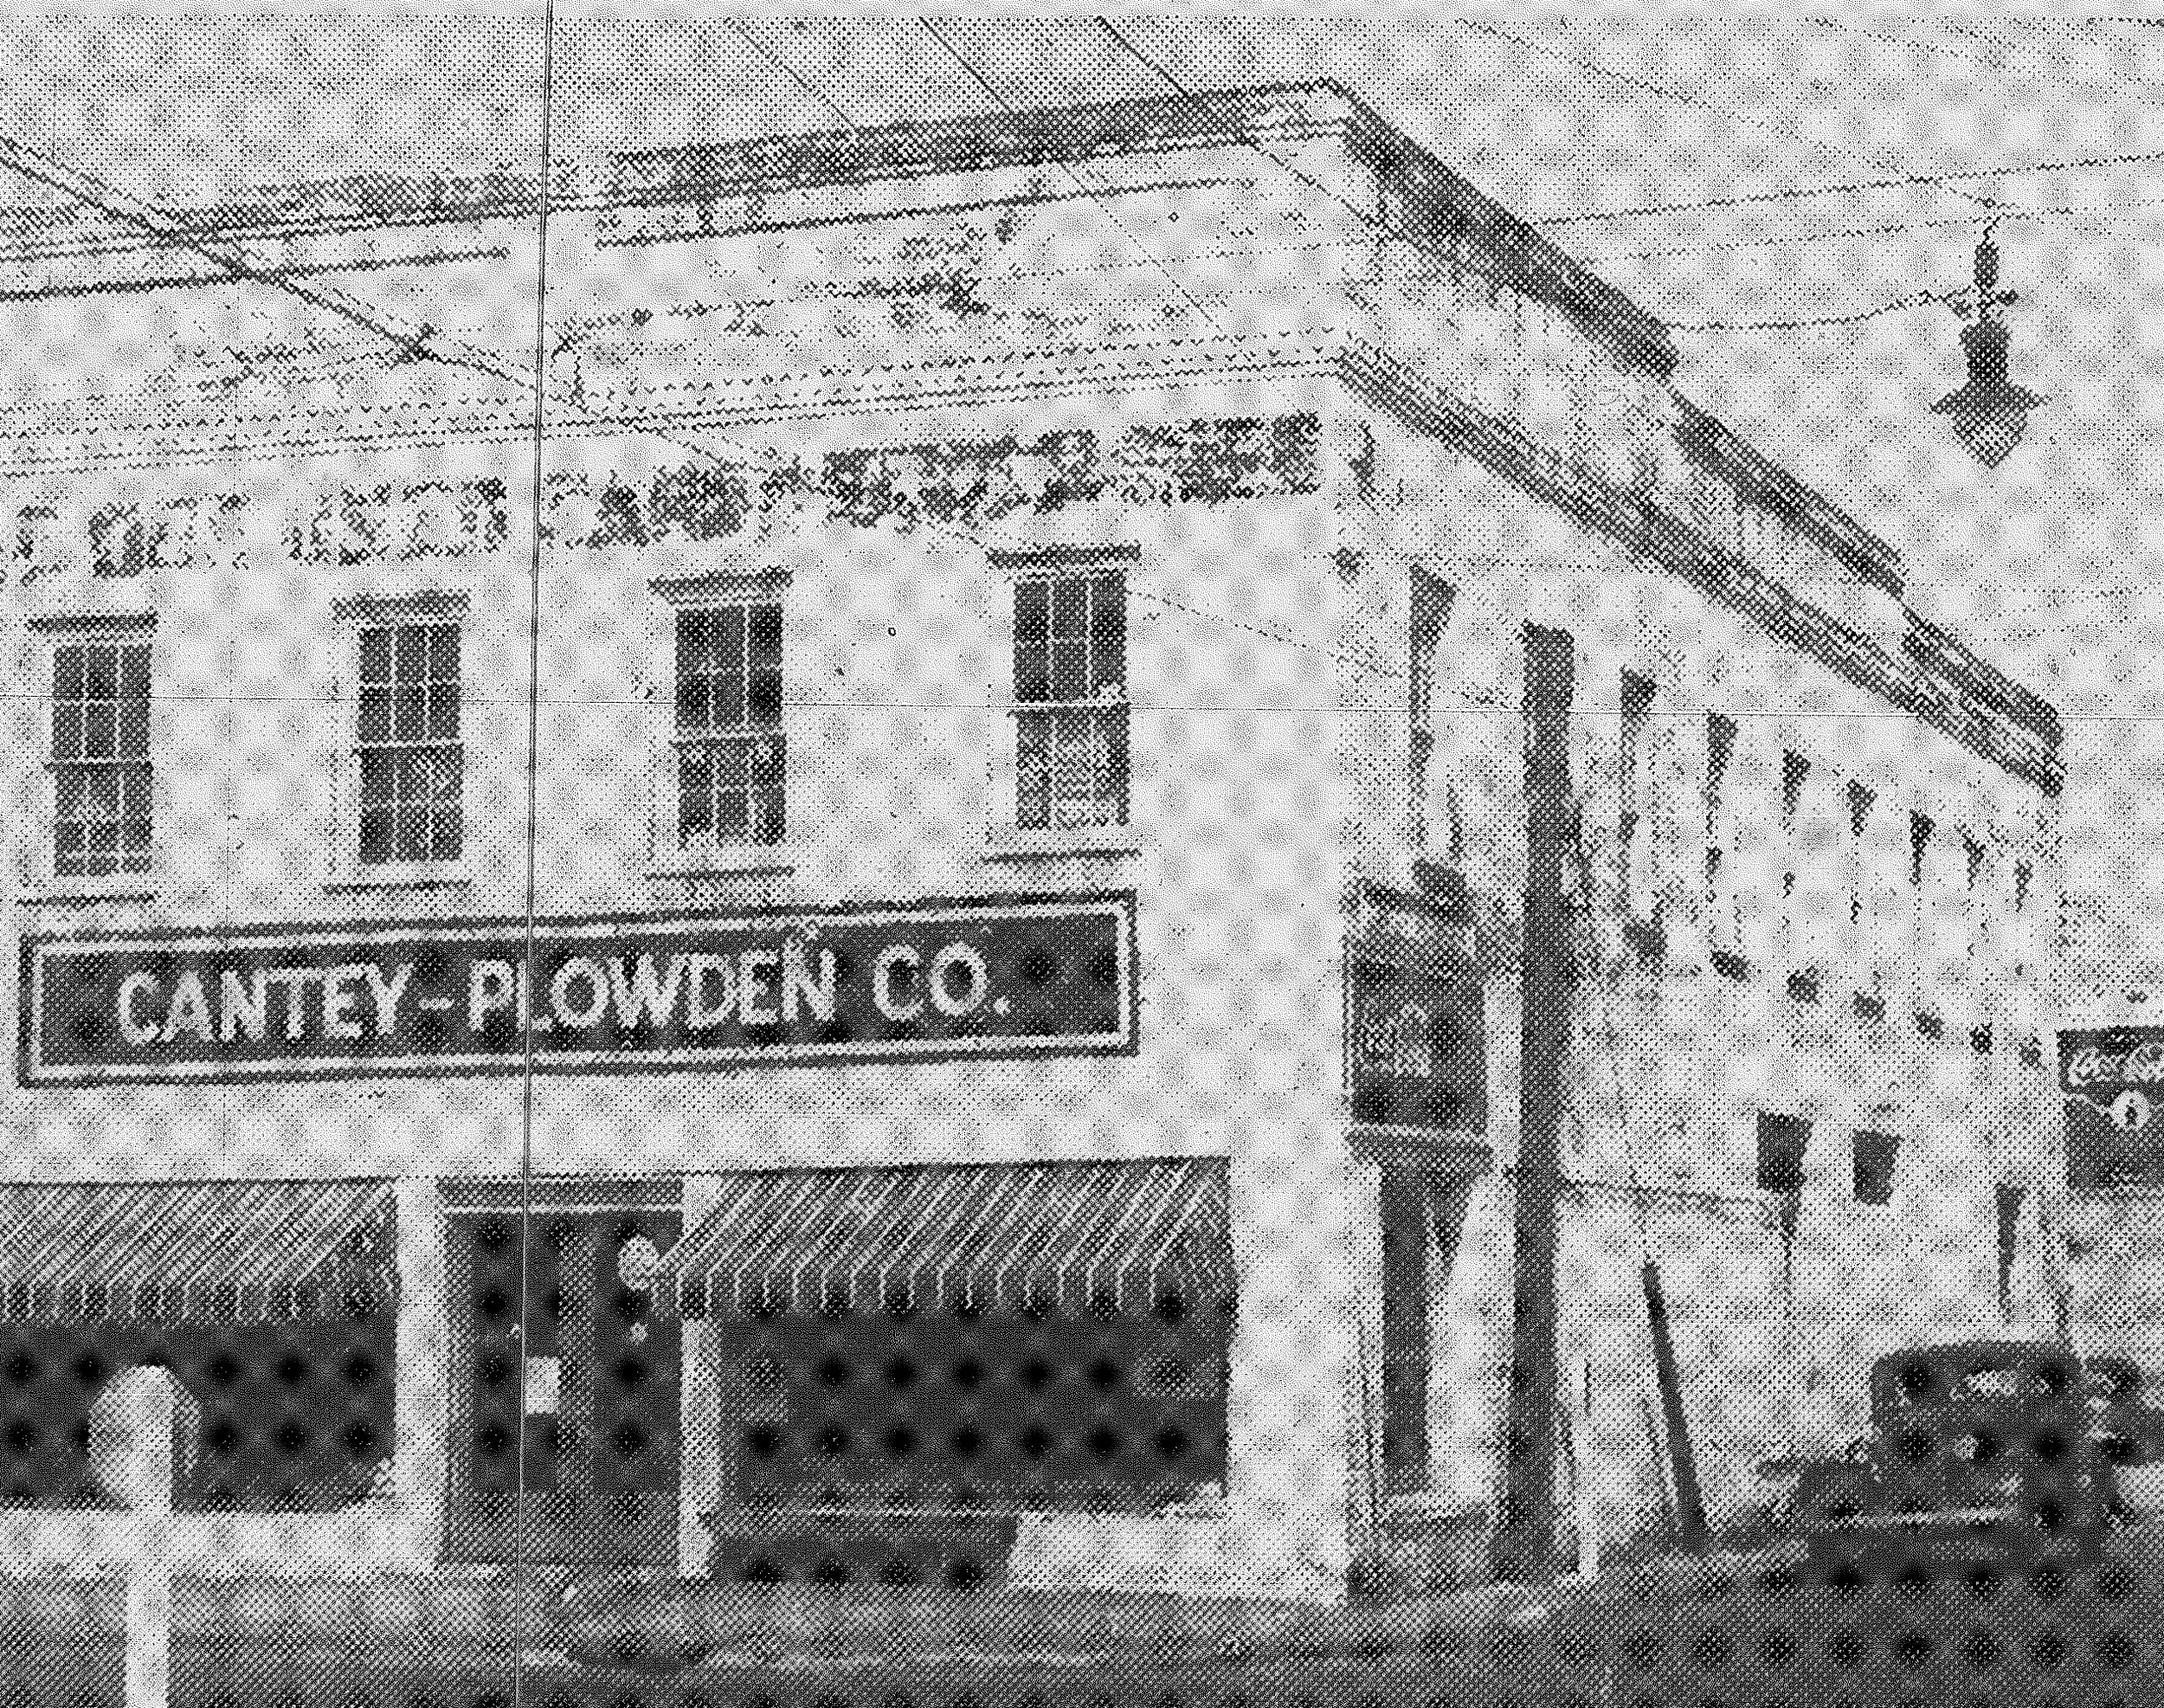 The Cantey-Plowden Co. building is seen at the corner of Hampton and Sumter streets in 1943.